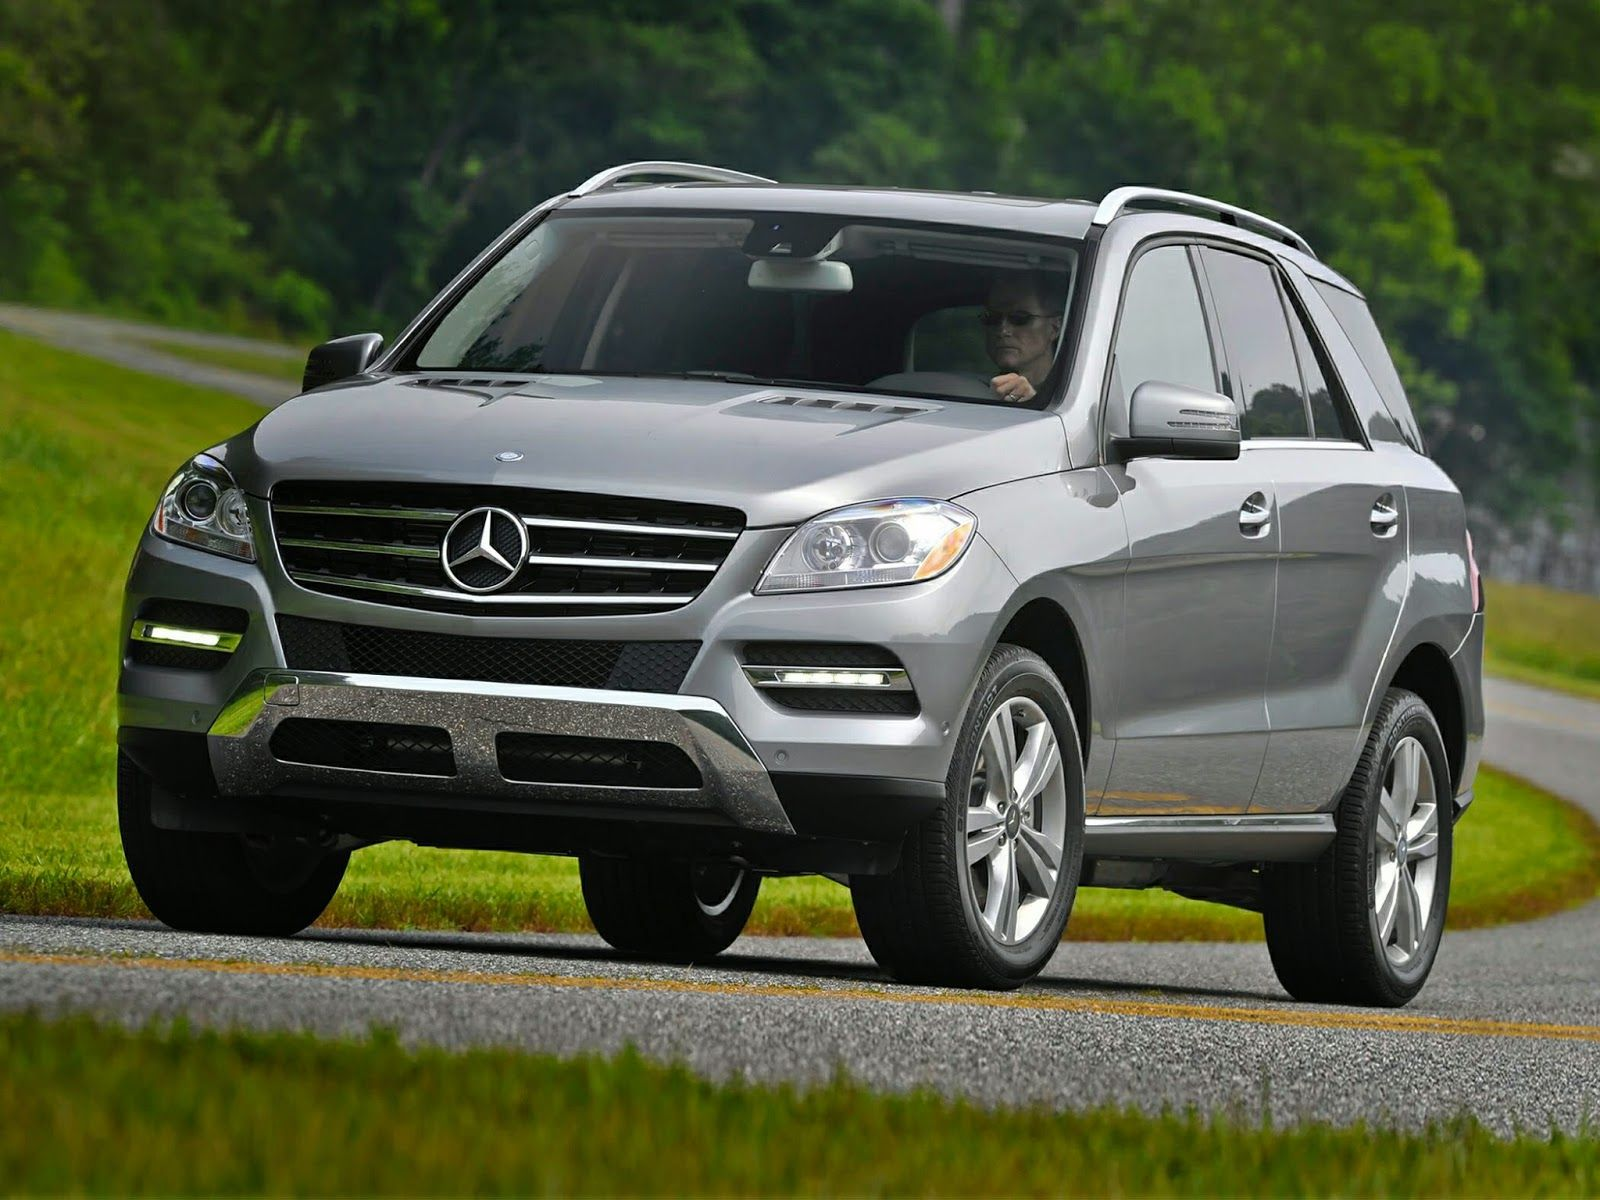 b4a49898162ff8307f0aafca1bfdb265 Cool Review About 2012 Mercedes Ml350 Bluetec